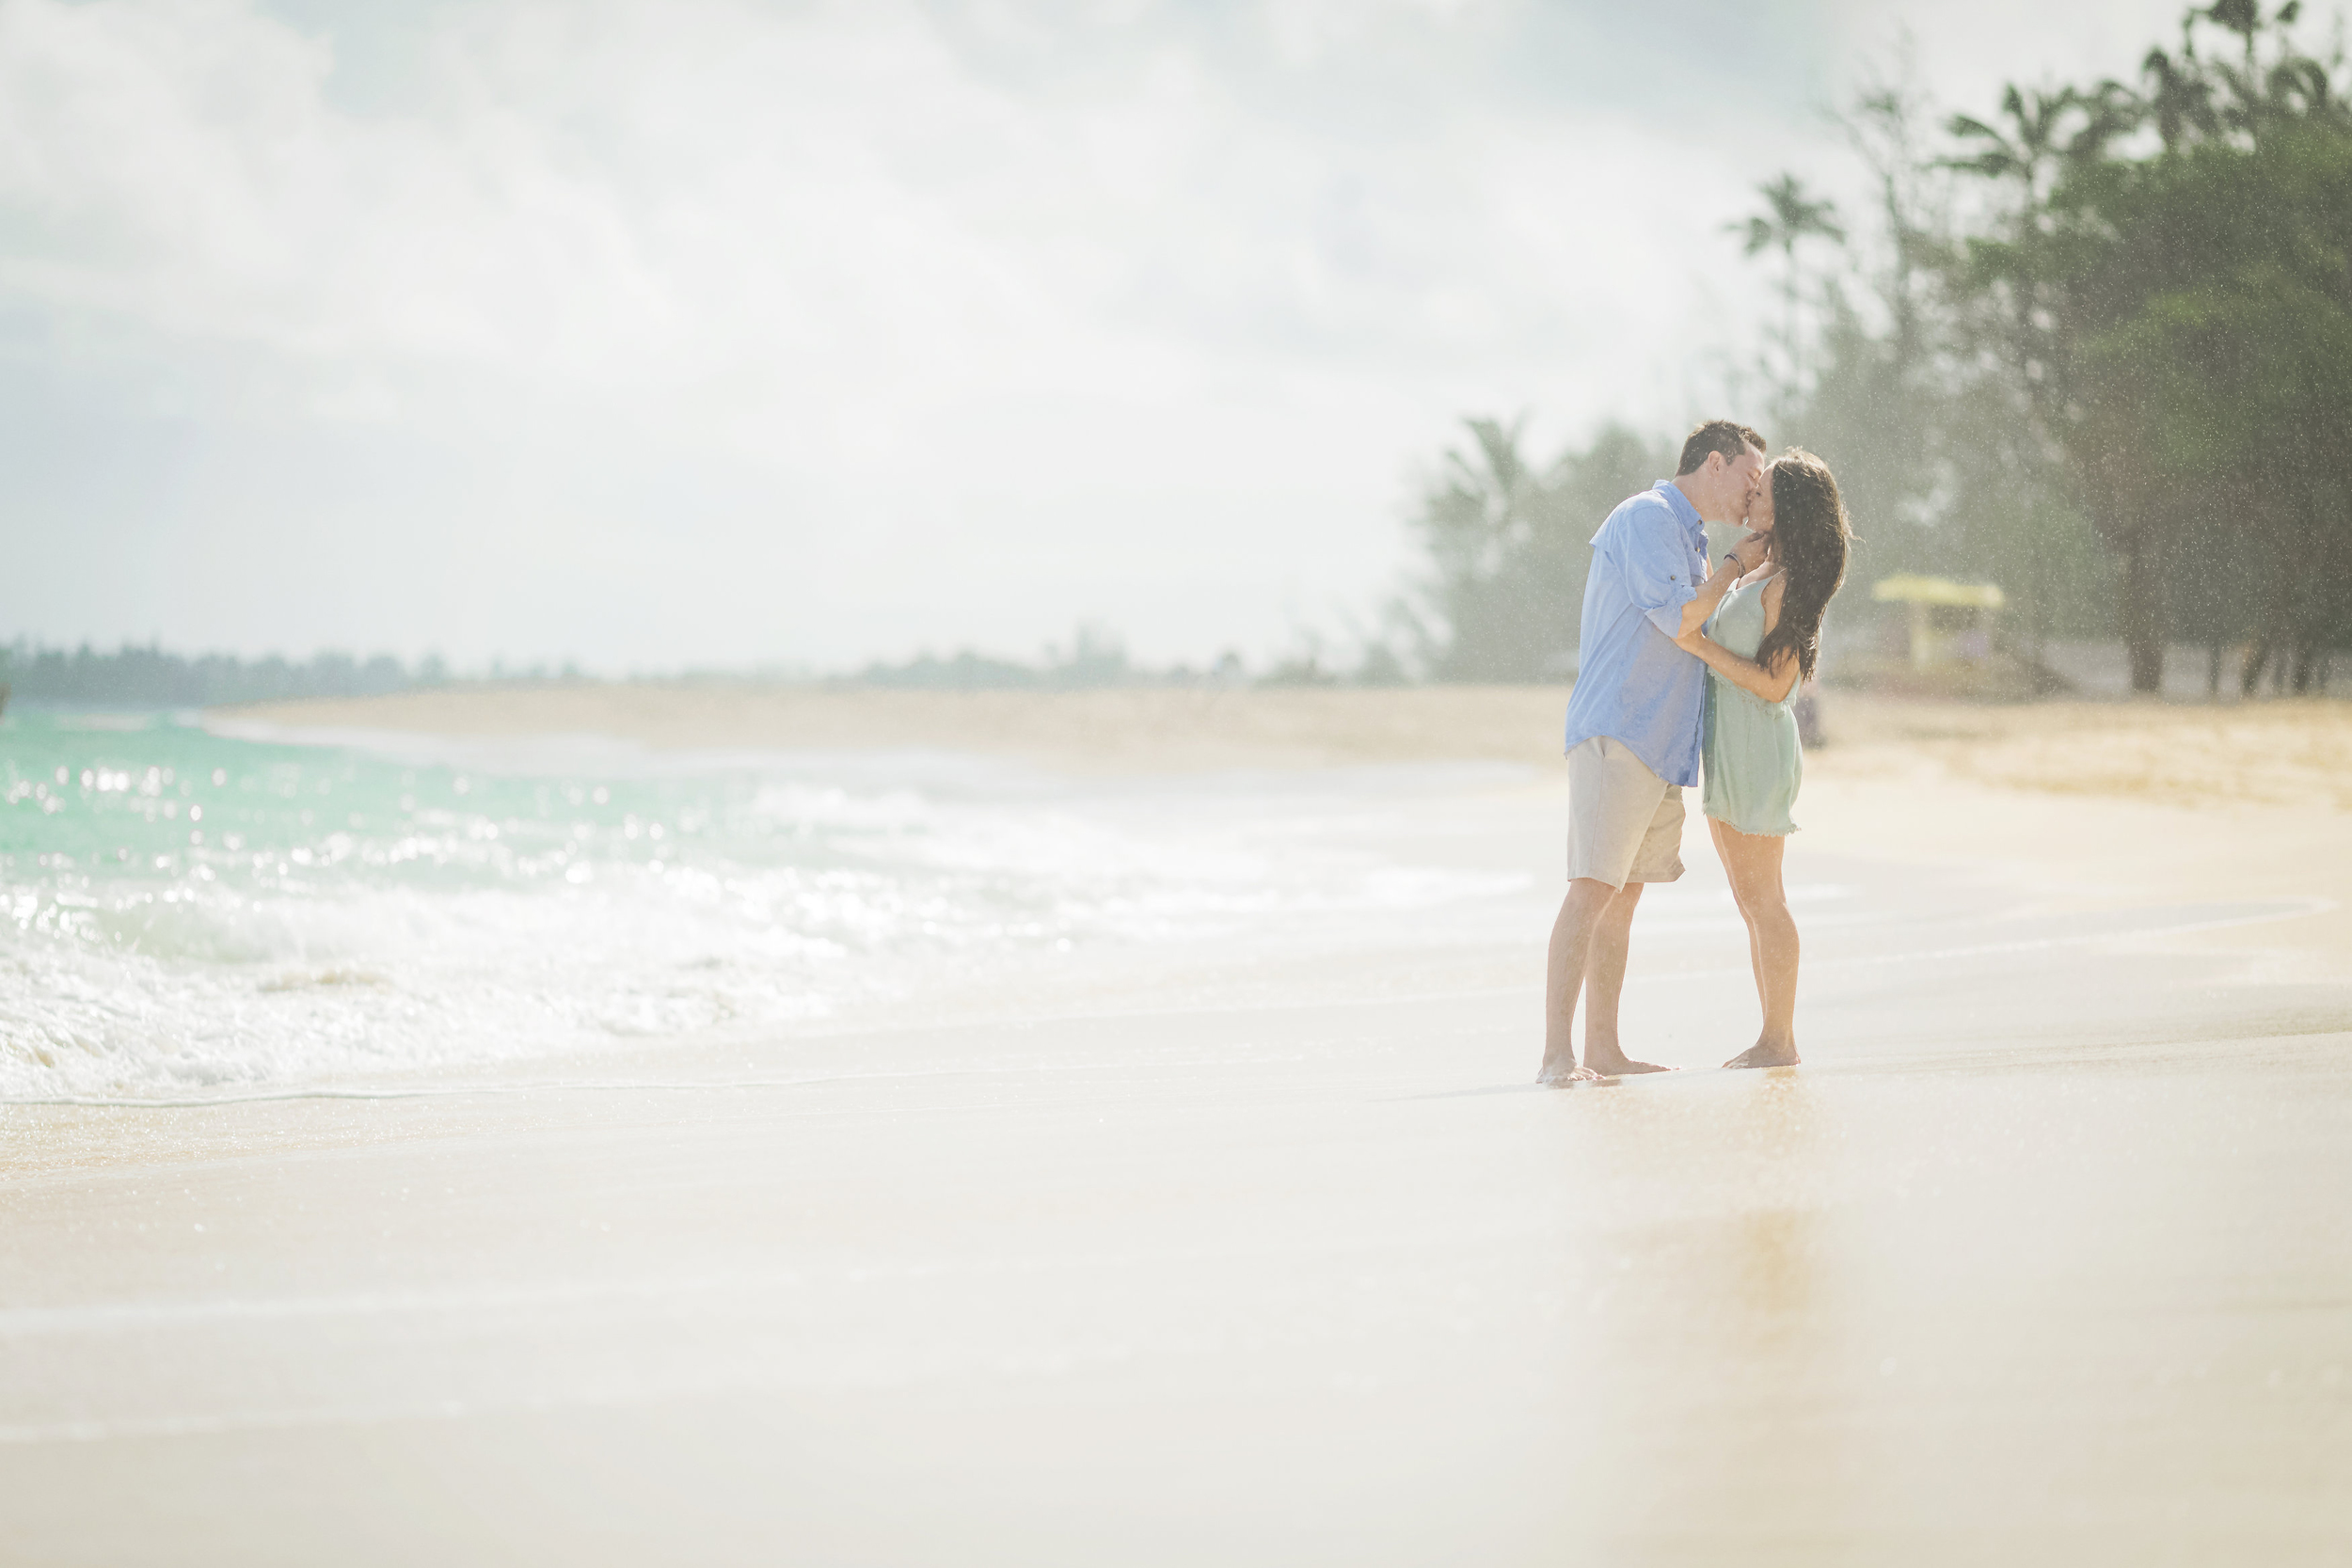 angie-diaz-photography-maui-proposal-baldwin-beach-aimee-tyler-25.jpg